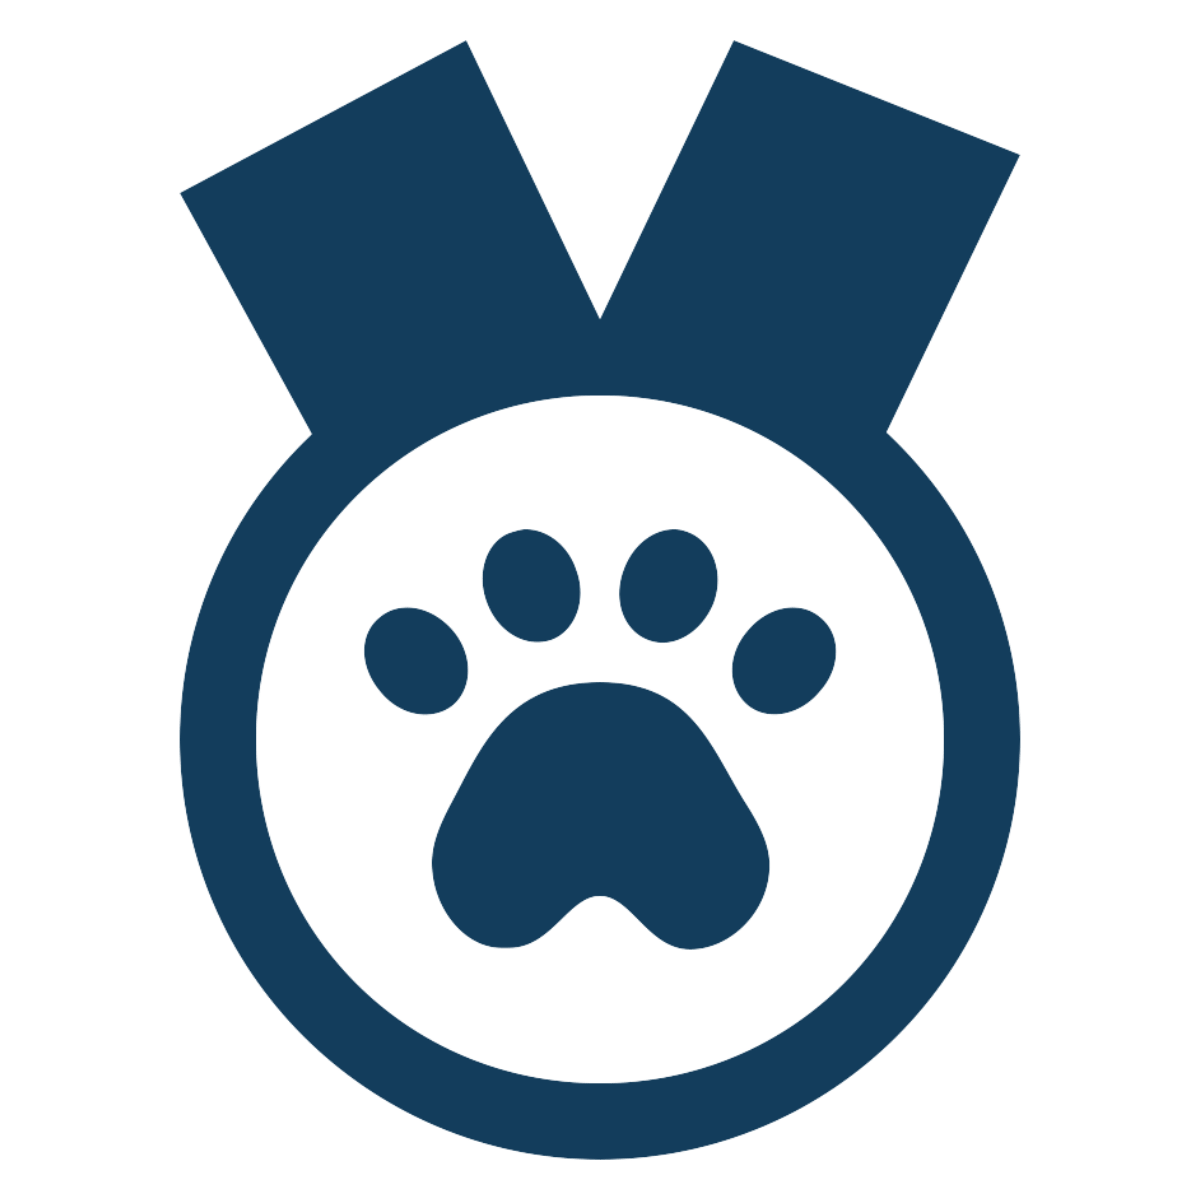 2018 Pet Care Innovation Prize winner